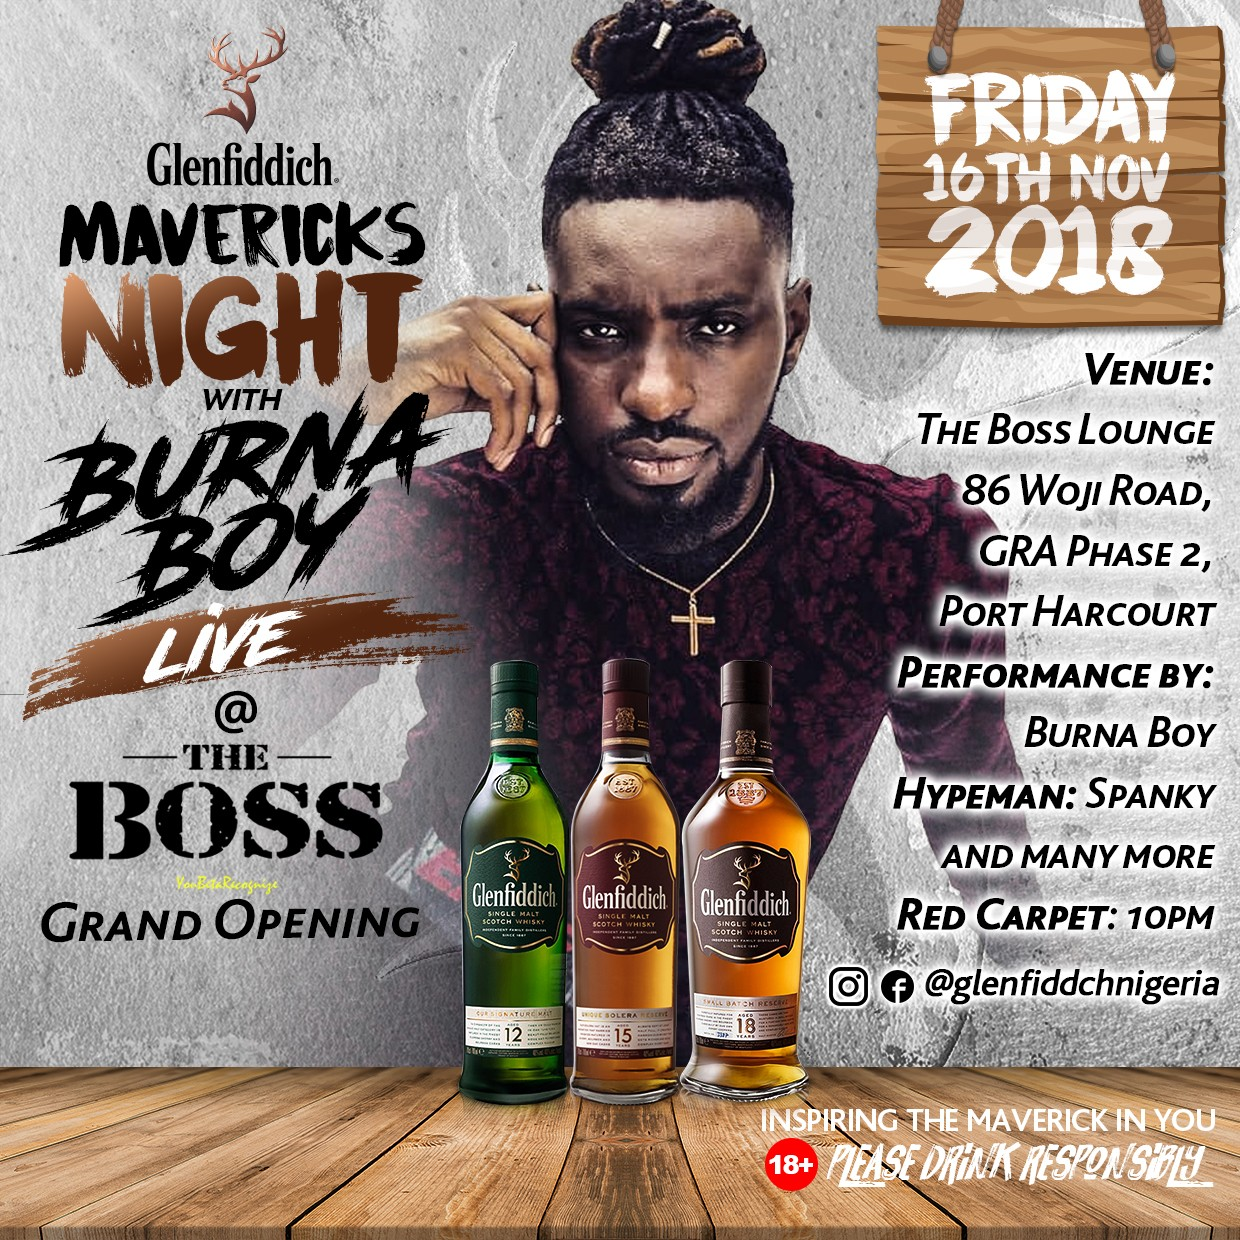 Burna Boy takes the Glenfiddich #Mavericksnight Party to Port Harcourt with Spanky Manolo this Friday